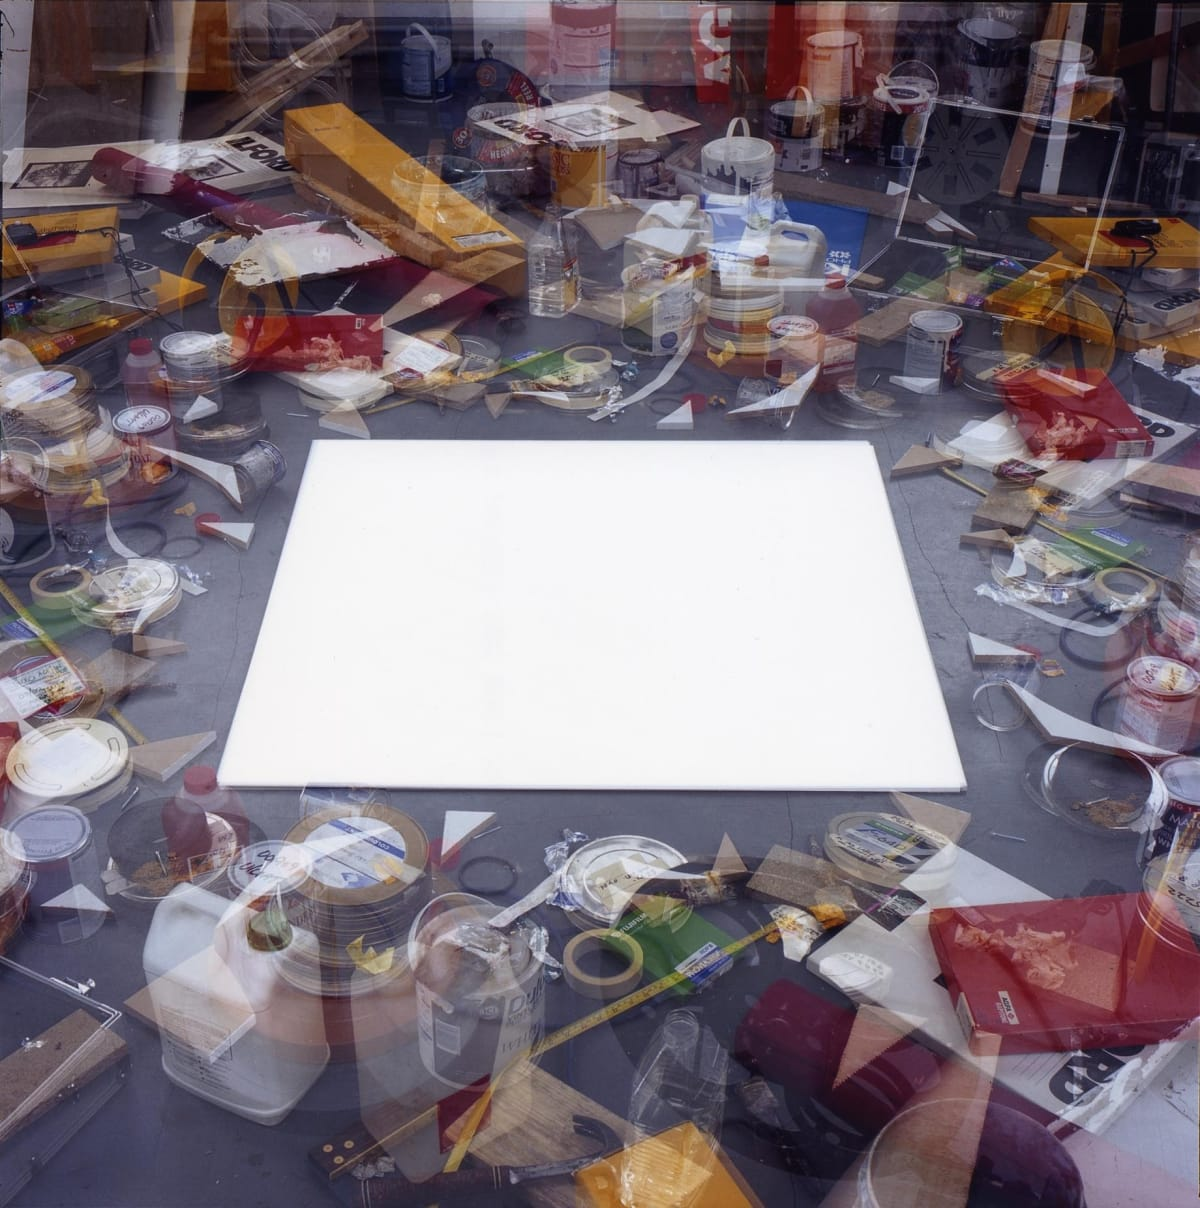 John HILLIARD Division of Labour, 2004 C-type print on aluminium 125 x 125 cm